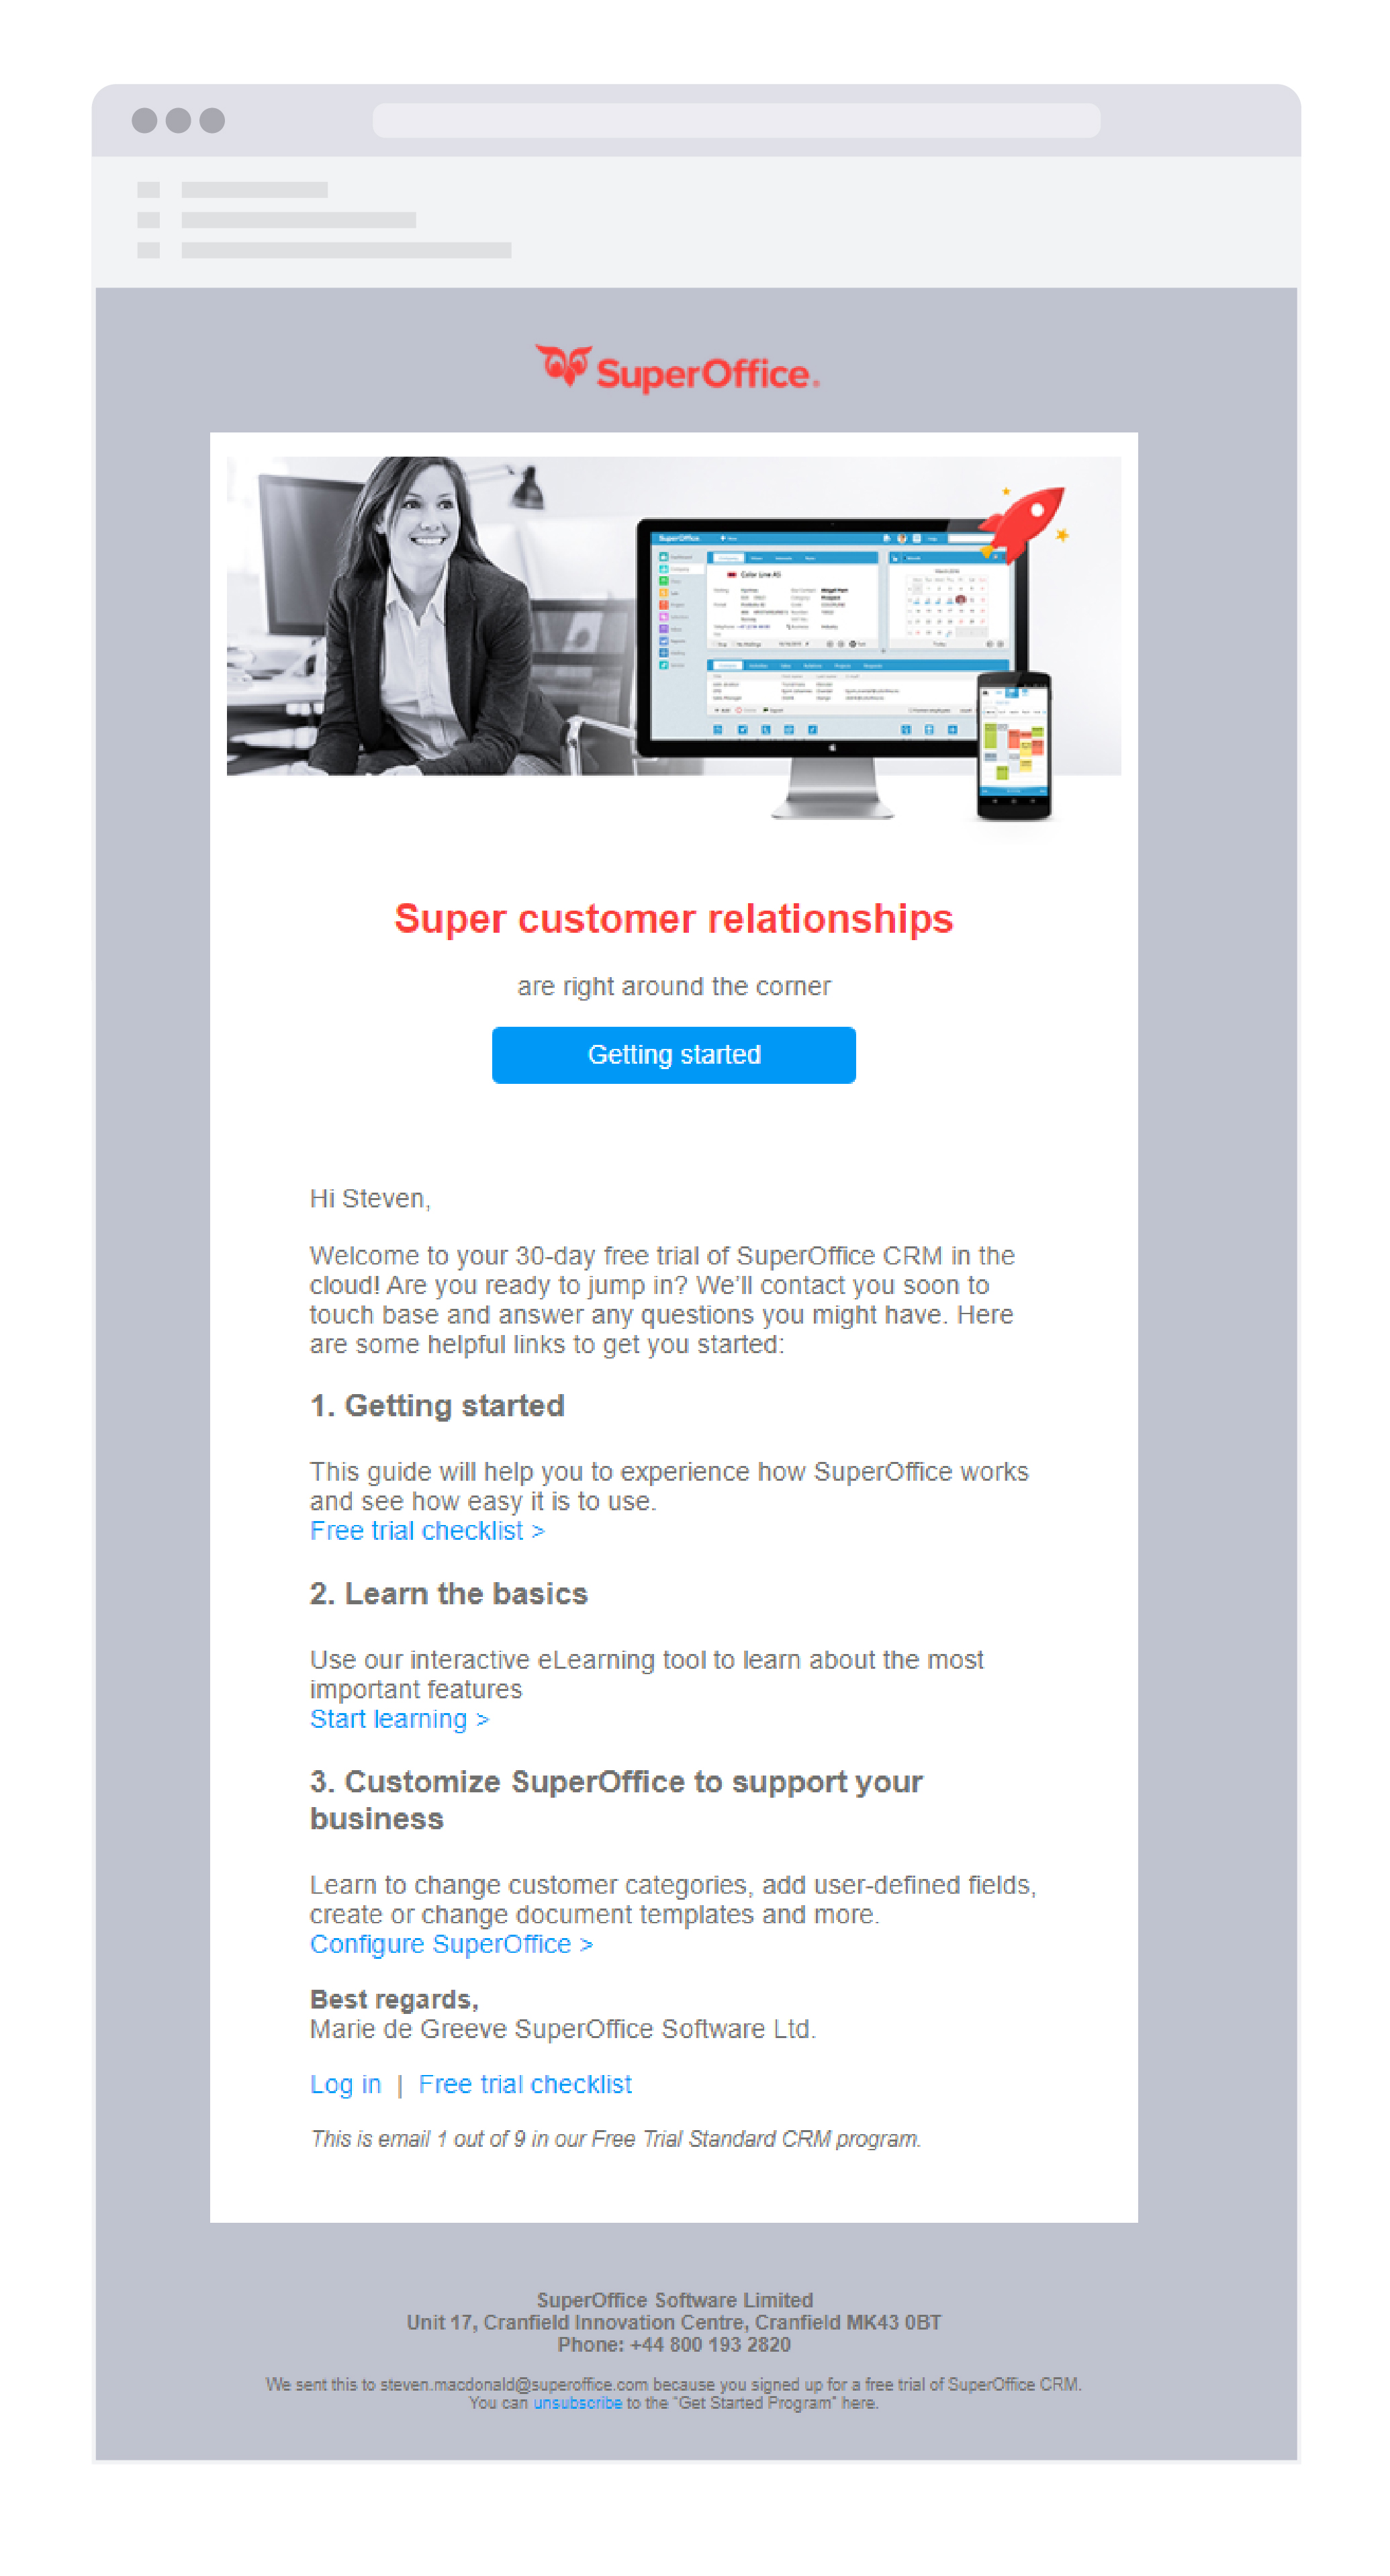 Free trial welcome email sent via customer service software